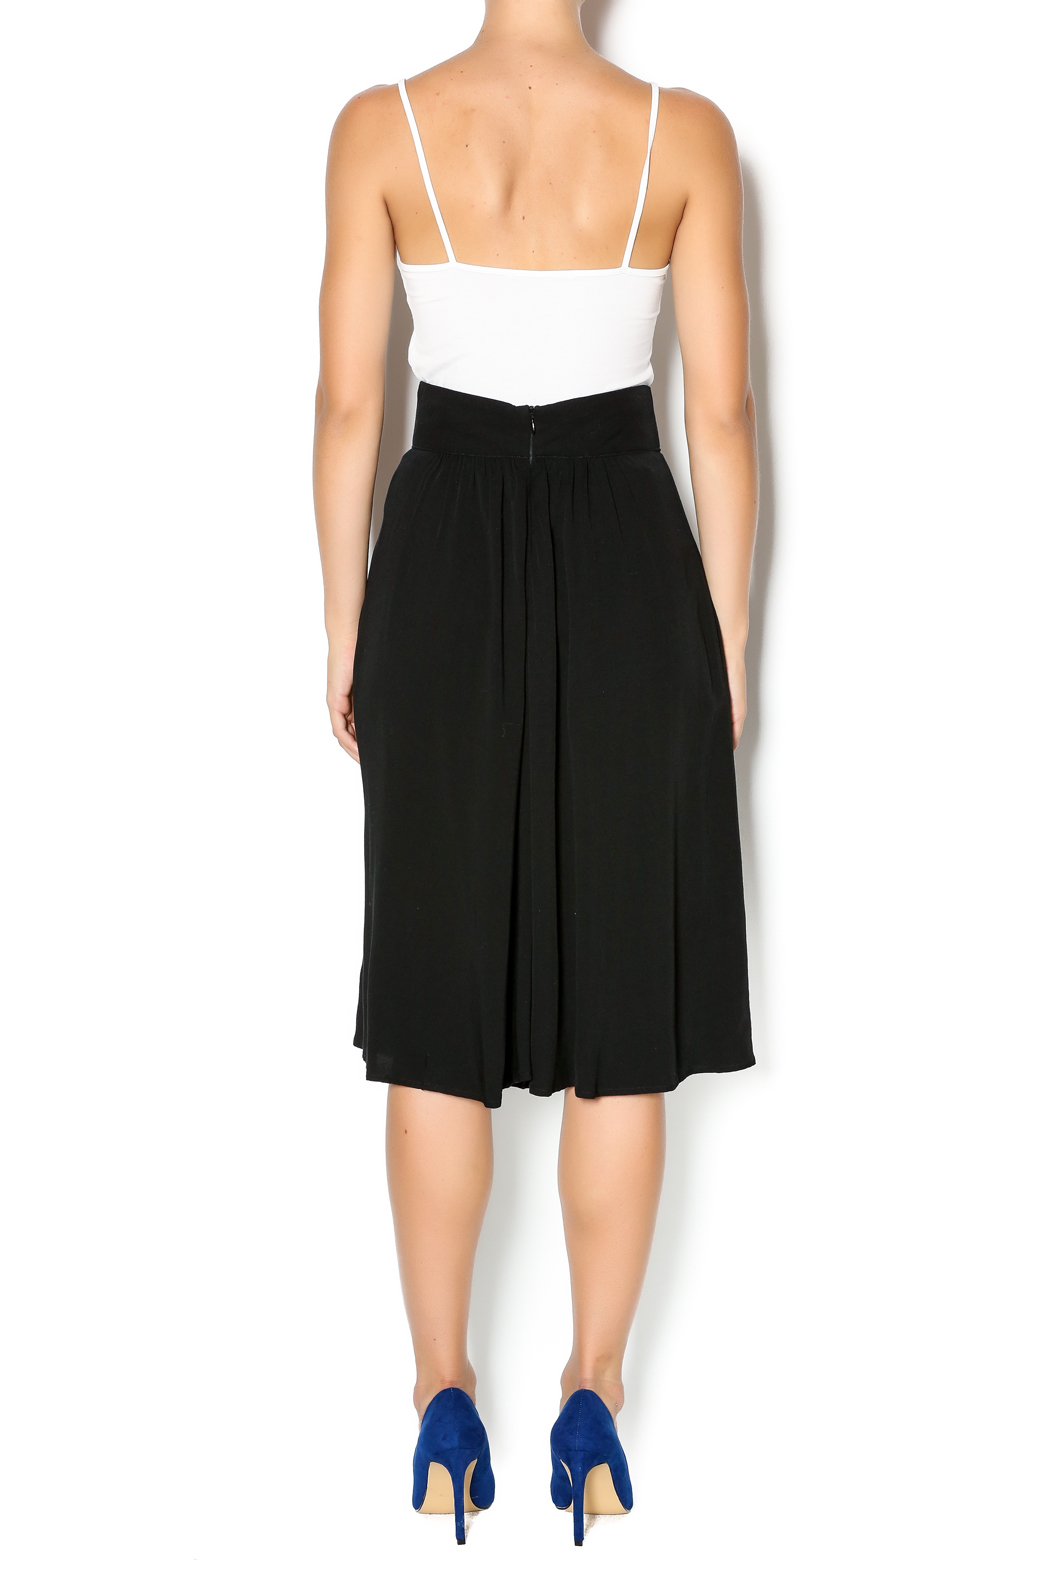 Trashy Diva High Waisted Skirt - Side Cropped Image